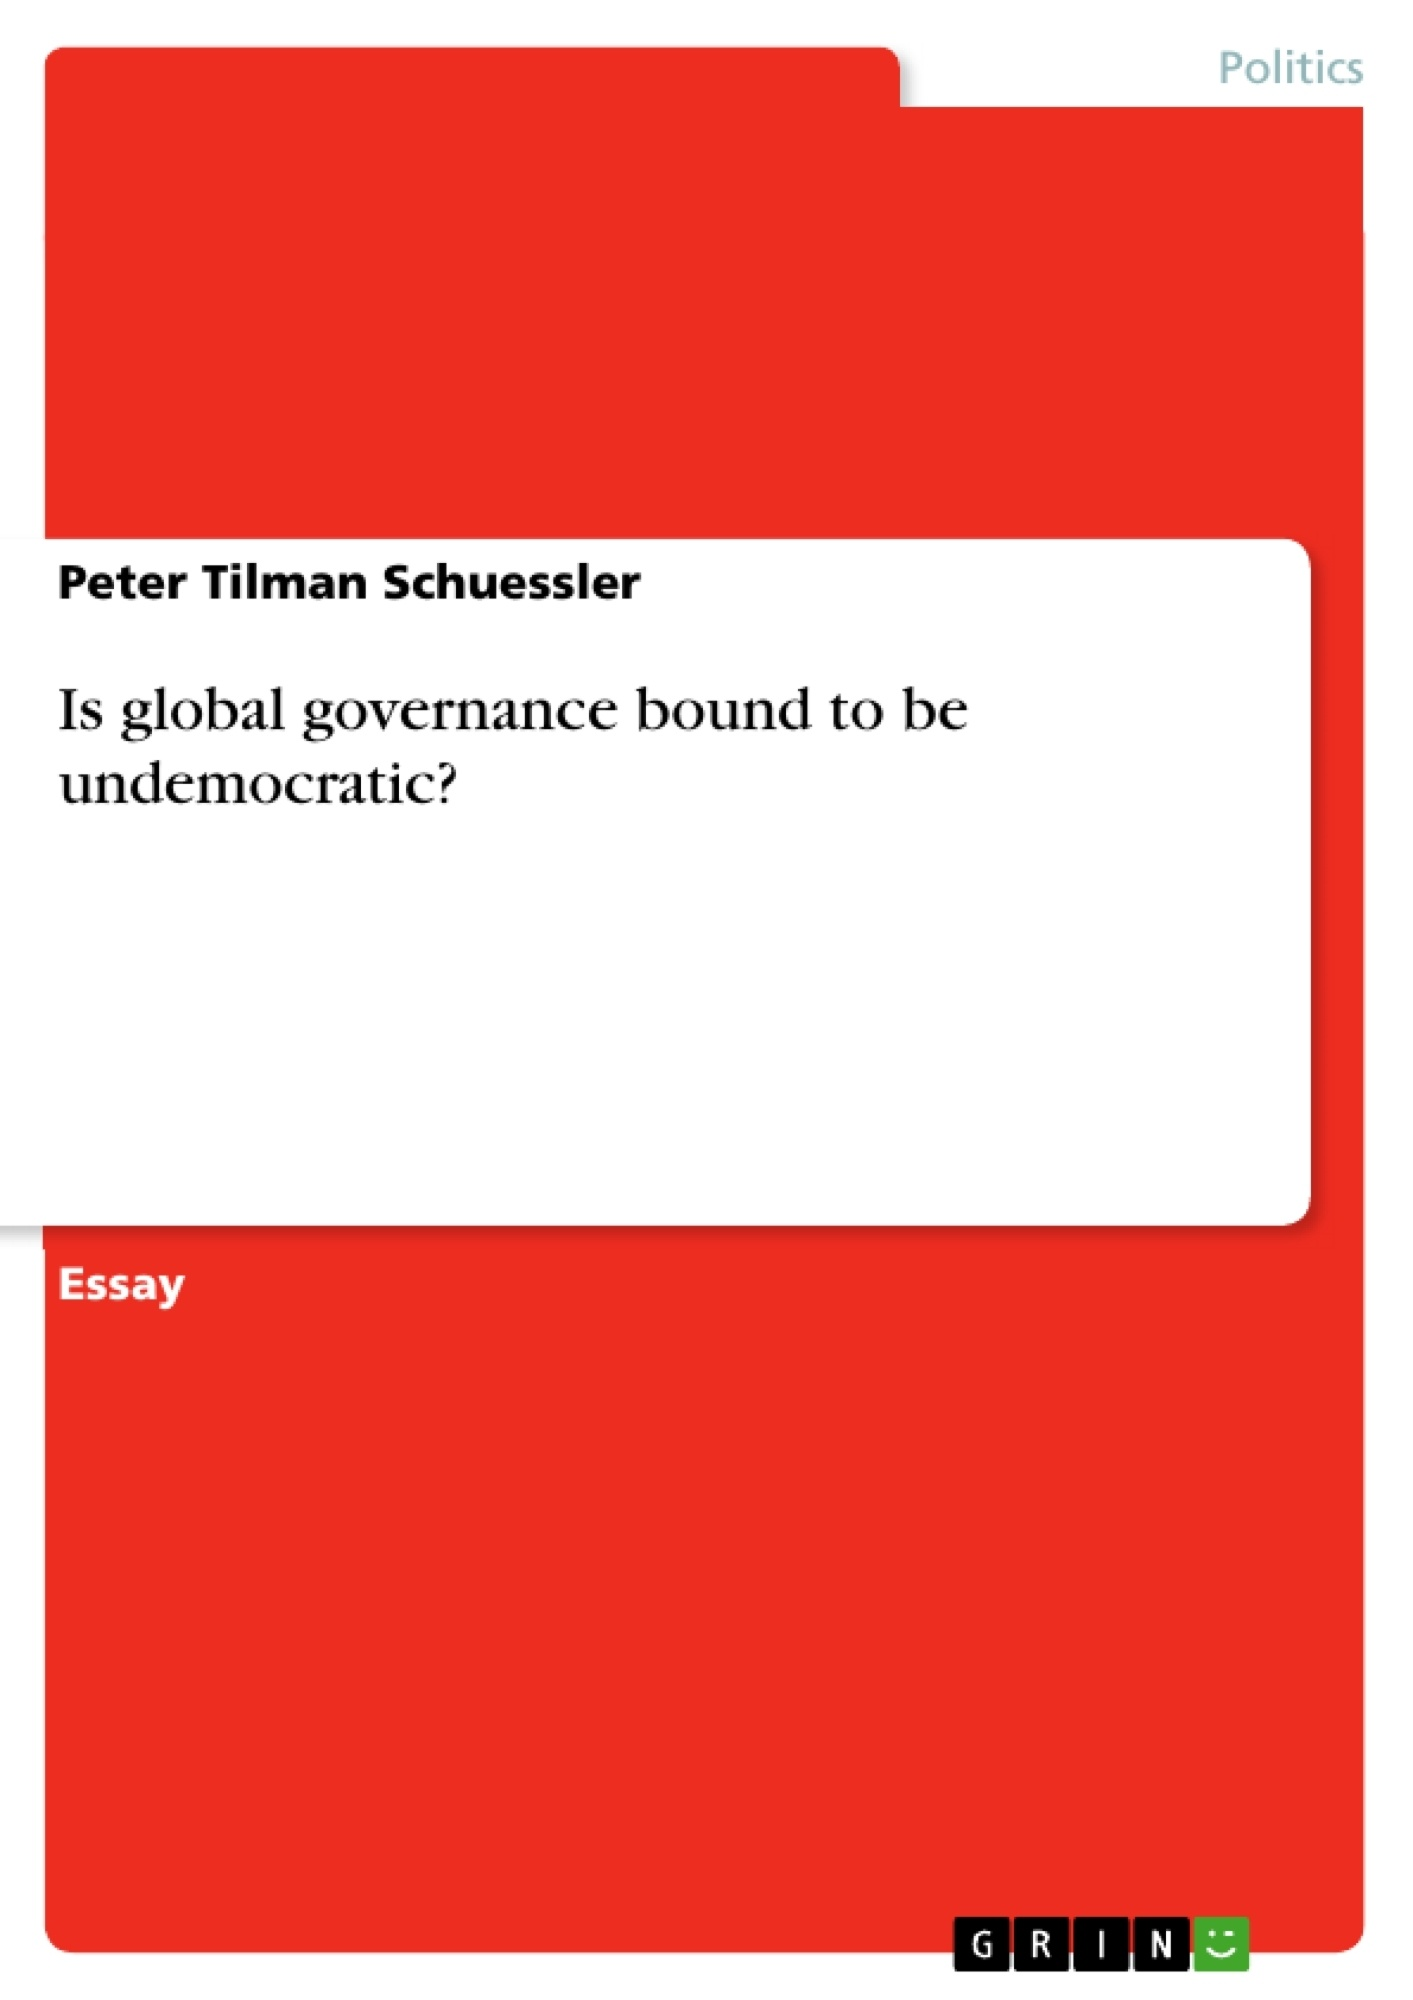 Title: Is global governance bound to be undemocratic?